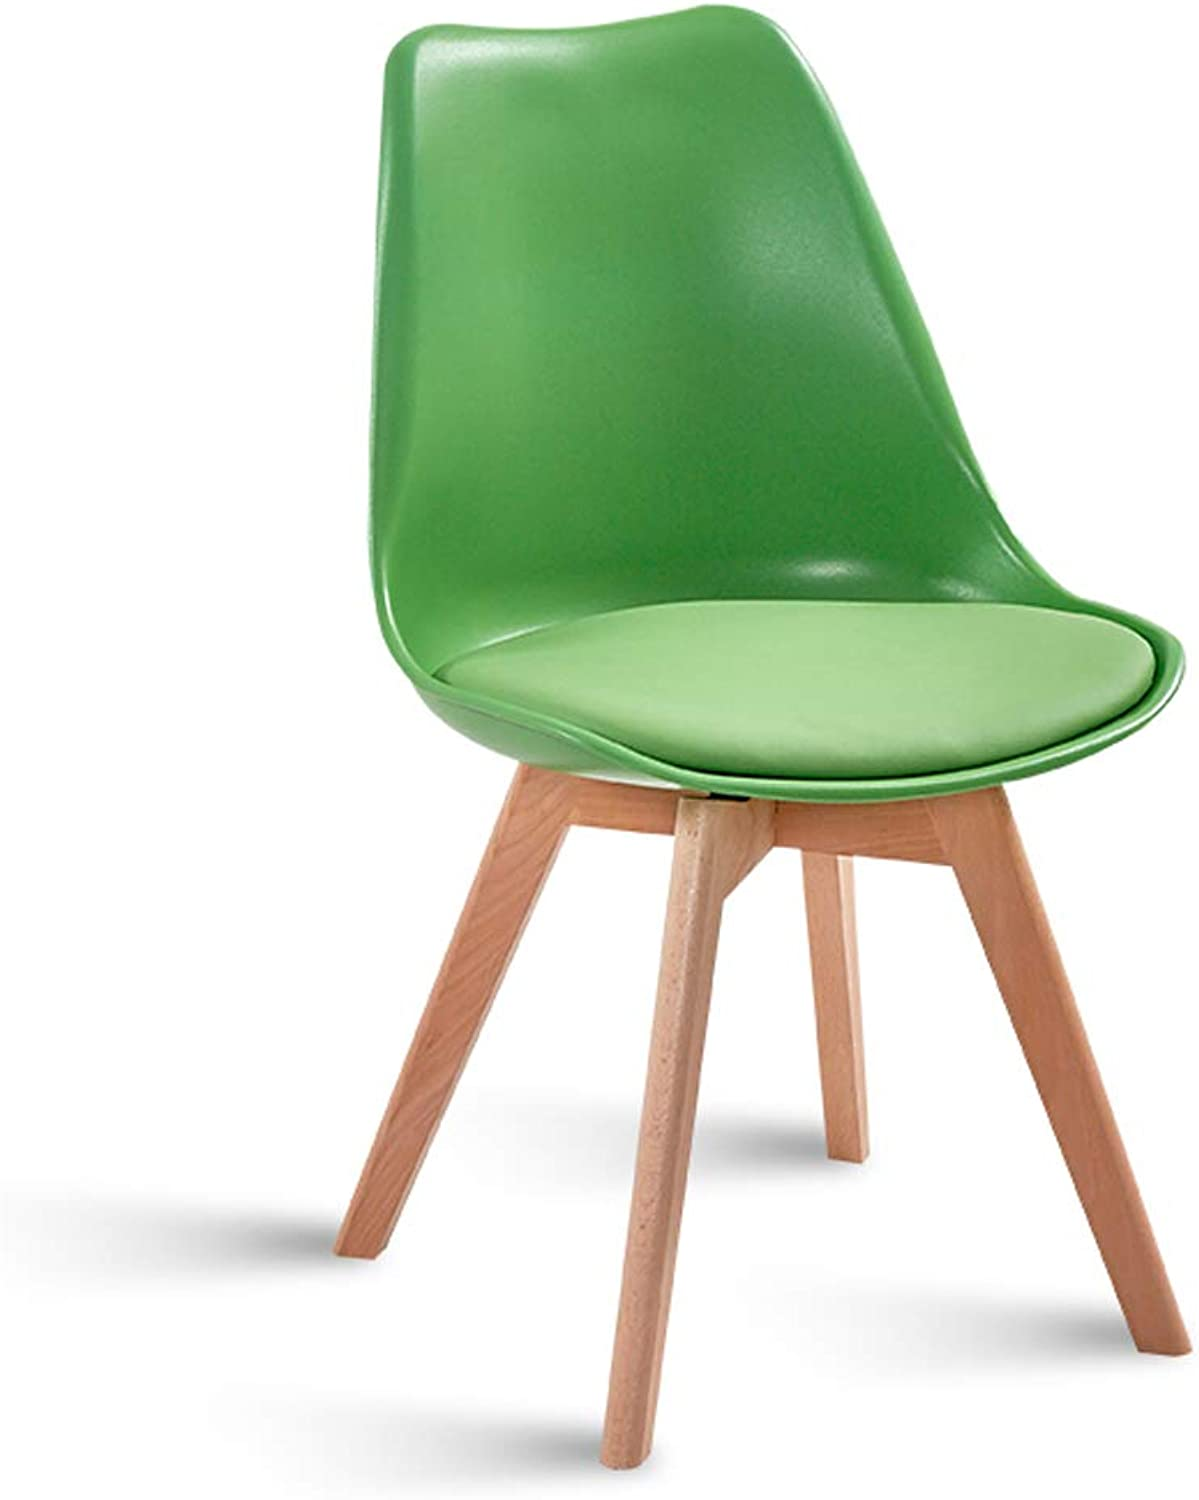 LRW Modern Creative Reception Office Chair Nordic Simple Leisure Chair, Back Chair, Green